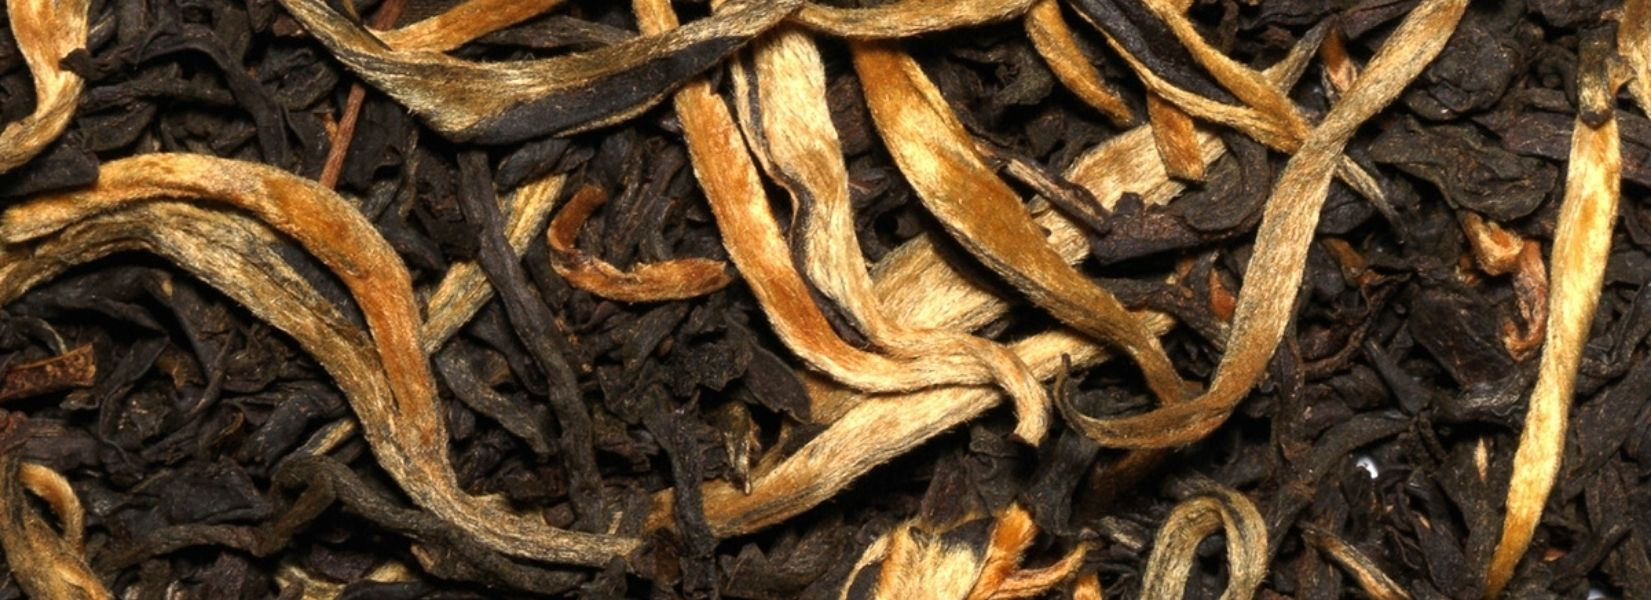 Golden Earl Grey Tea